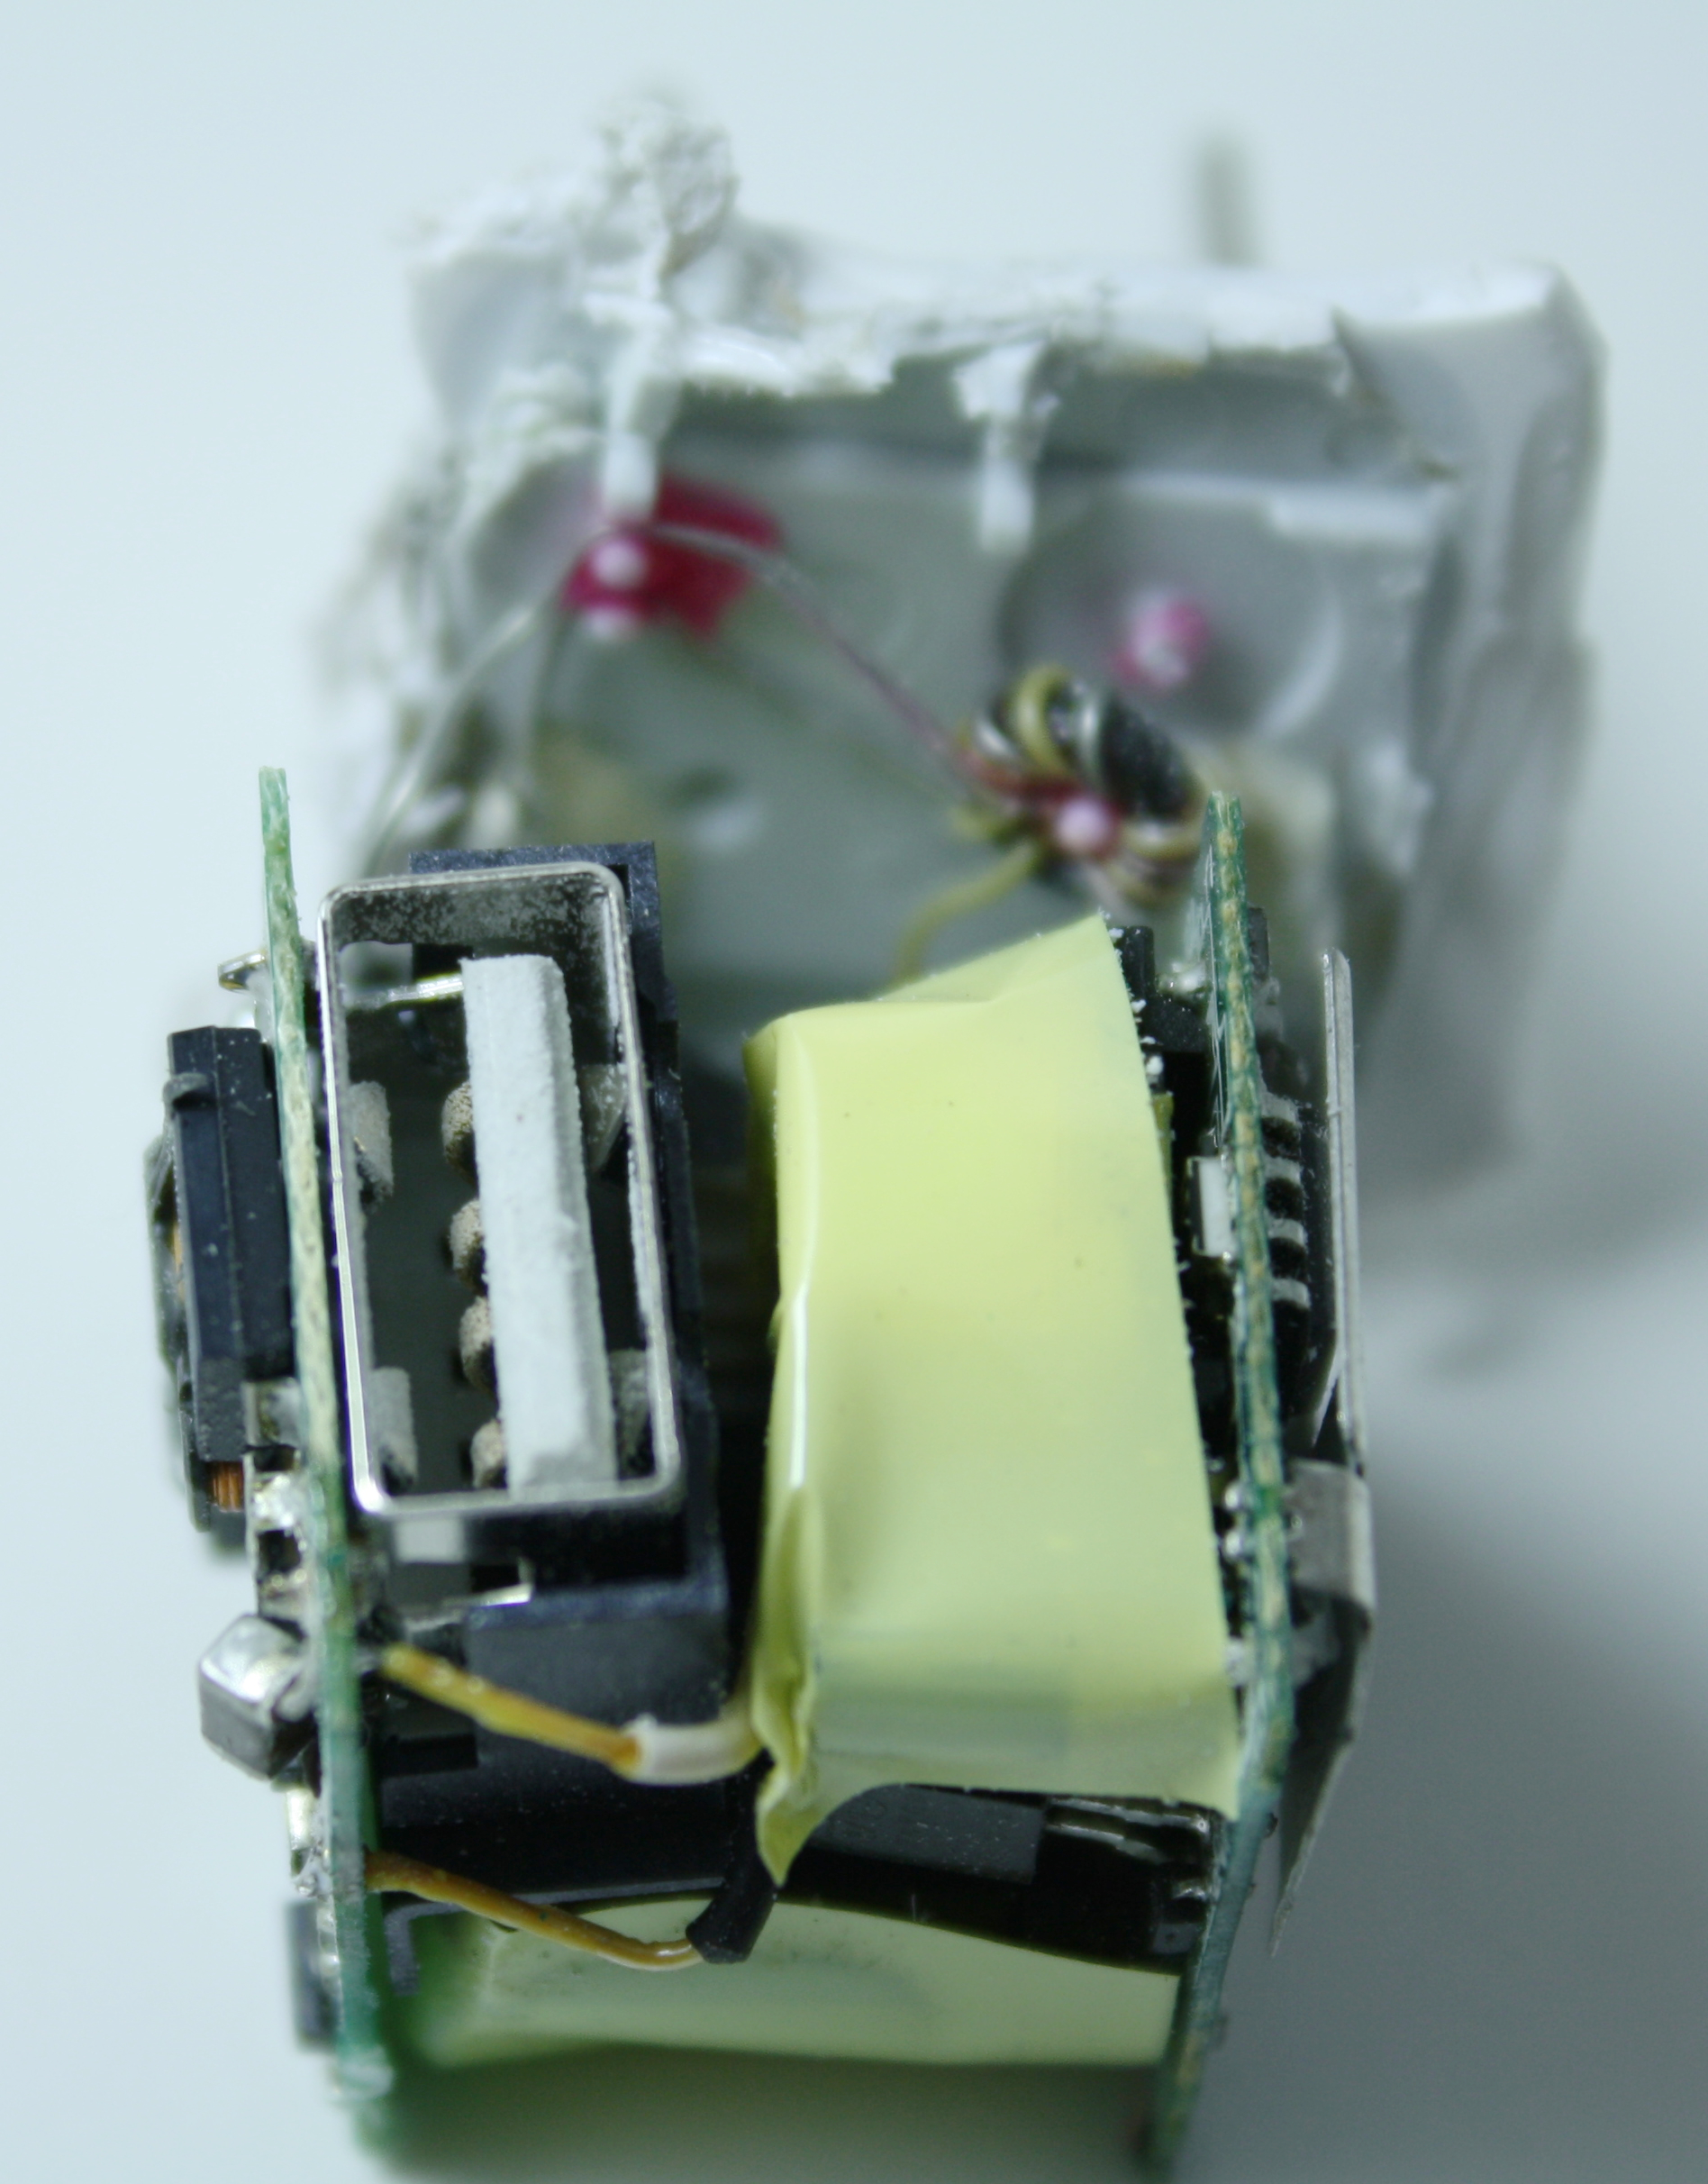 Apple Iphone Charger Teardown: Quality In A Tiny Expensive Package - Usb Outlet Cover Wiring Diagram